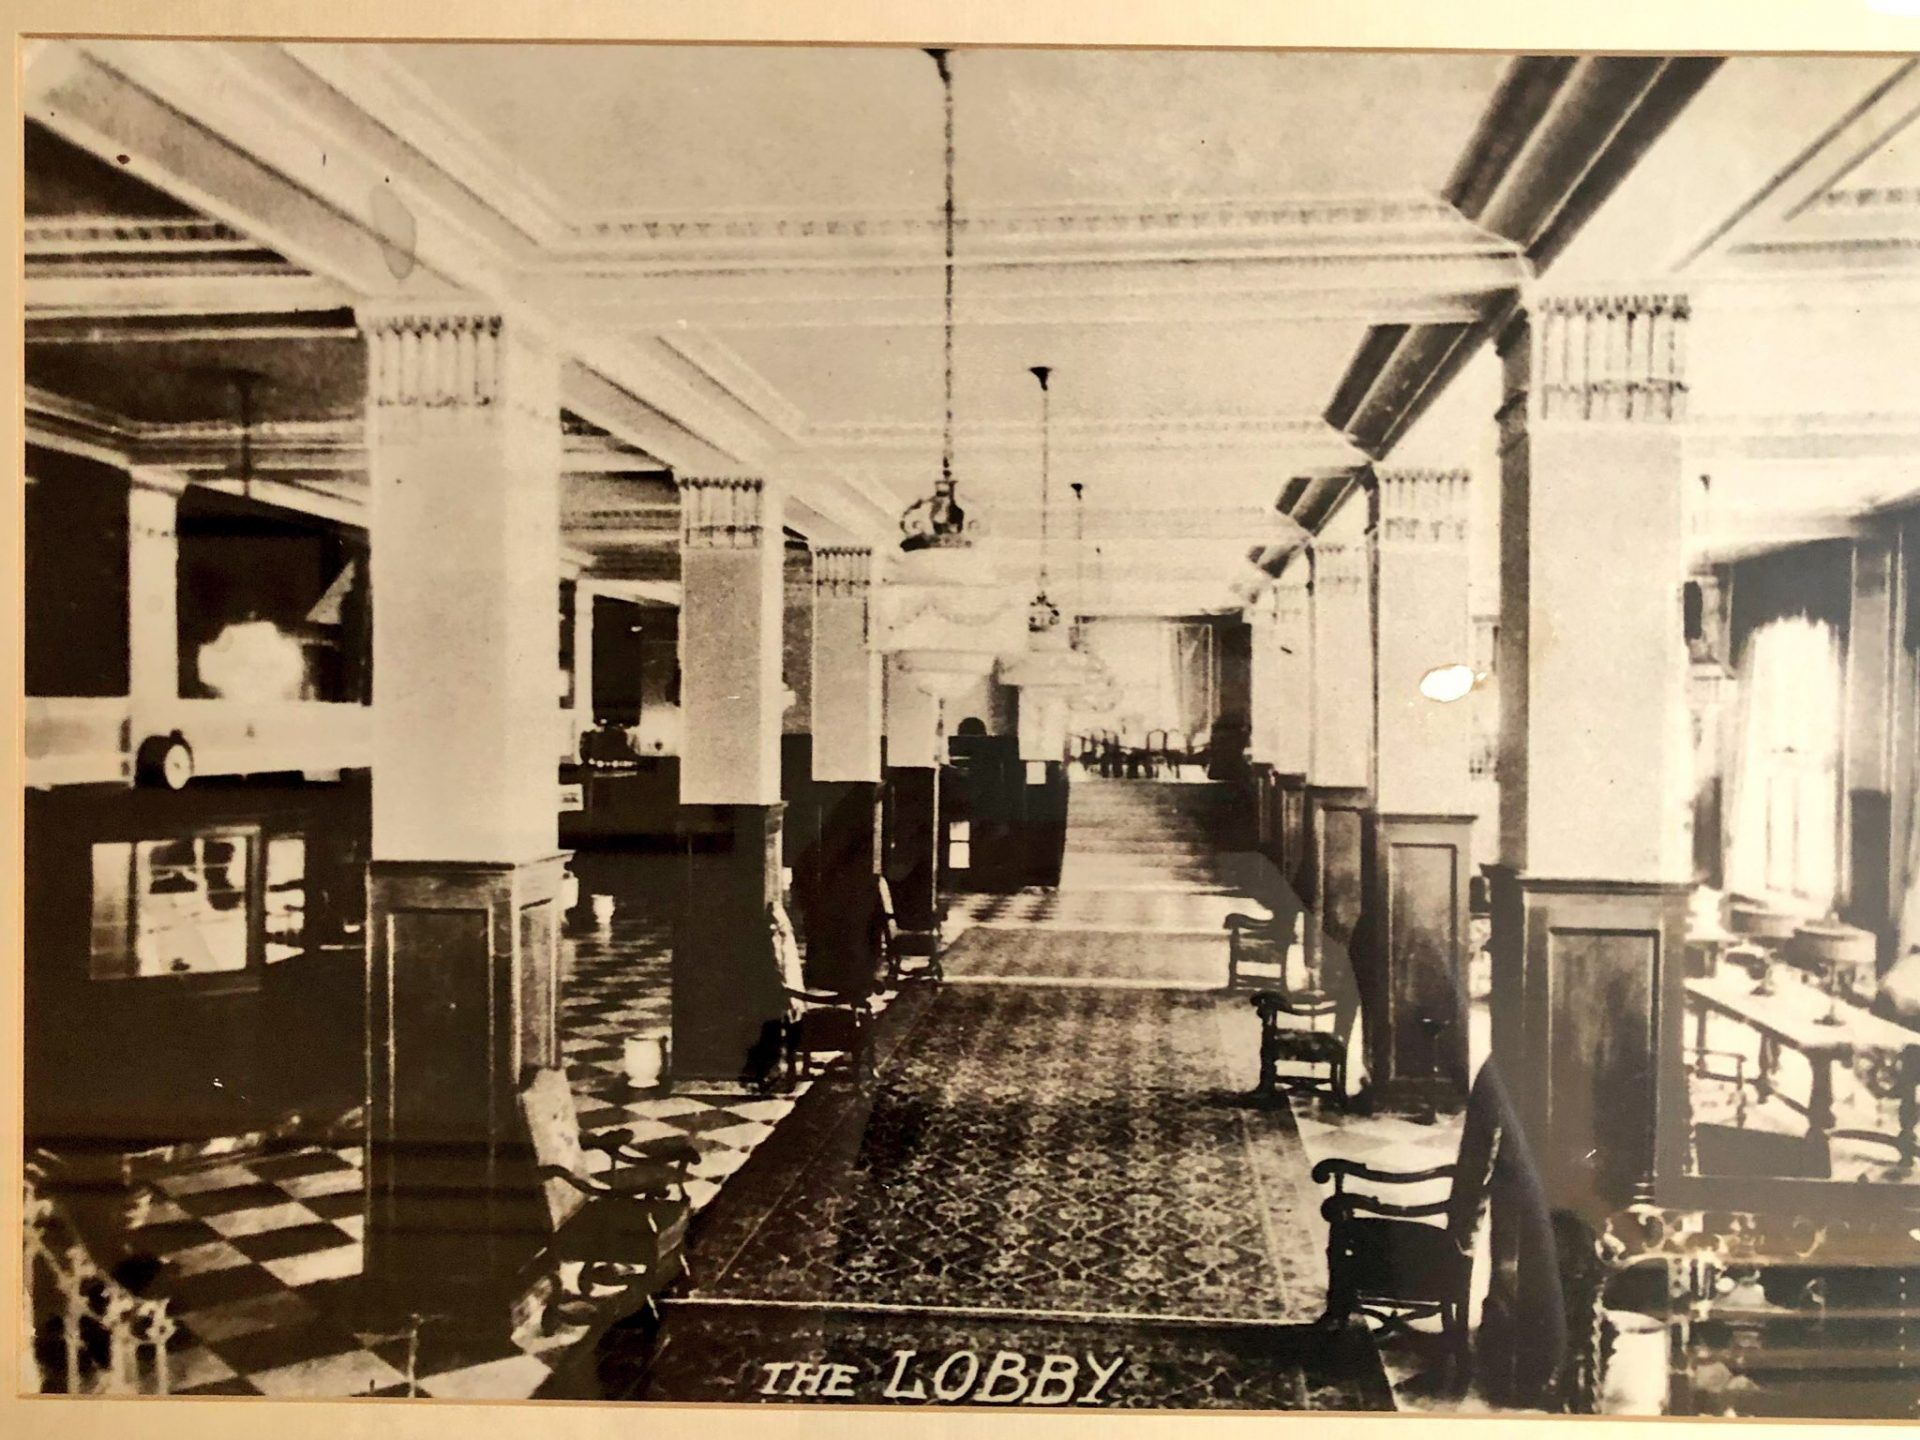 A photo of the original lobby is in sepia and shows square tile flooring and carpeted middle walk ways.